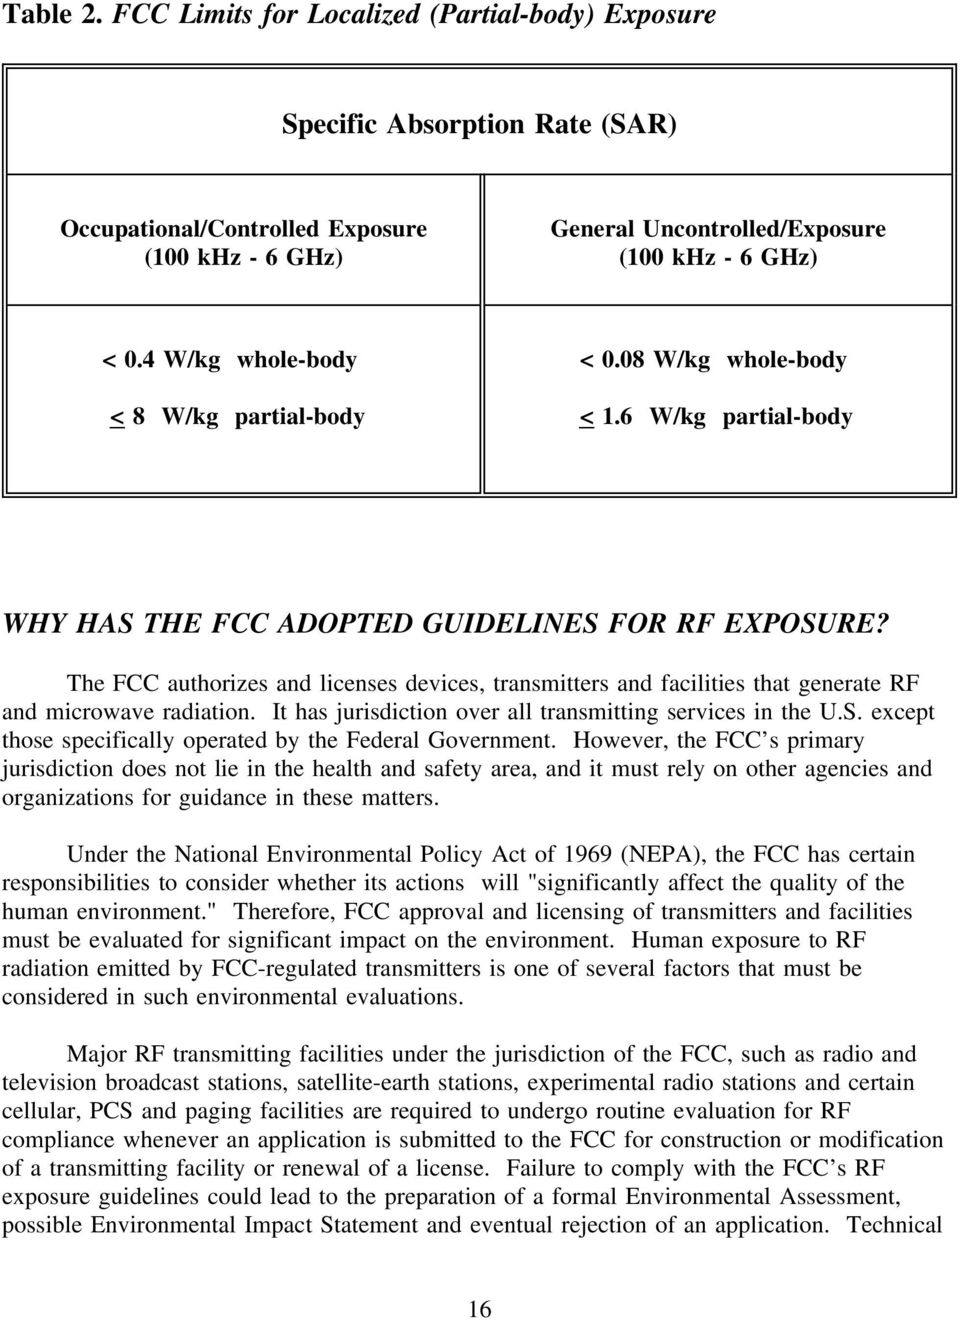 These exclusions are based on calculations and measurement data indicating that such transmitting stations or devices are unlikely to cause exposures in excess of the guidelines under normal